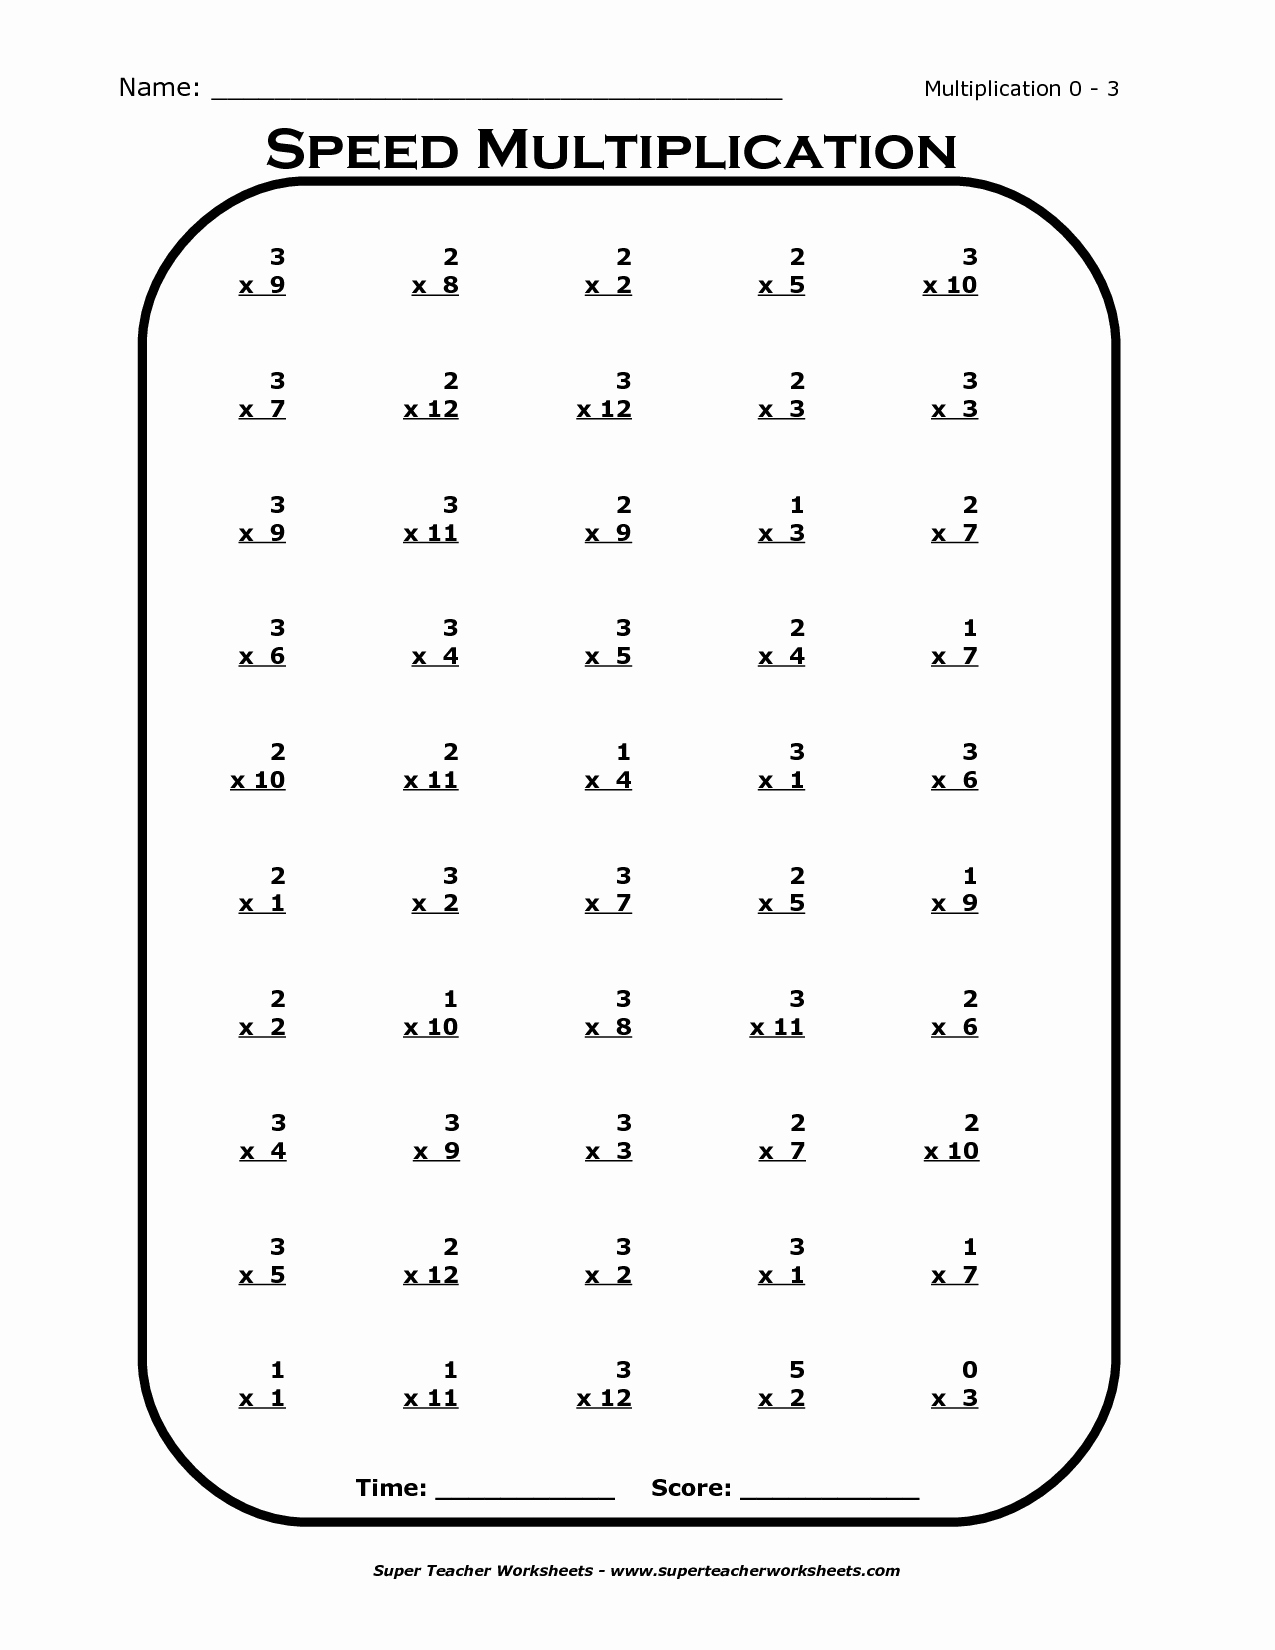 Multiplication Table Worksheet New Times Tables Worksheets 3rd Grade